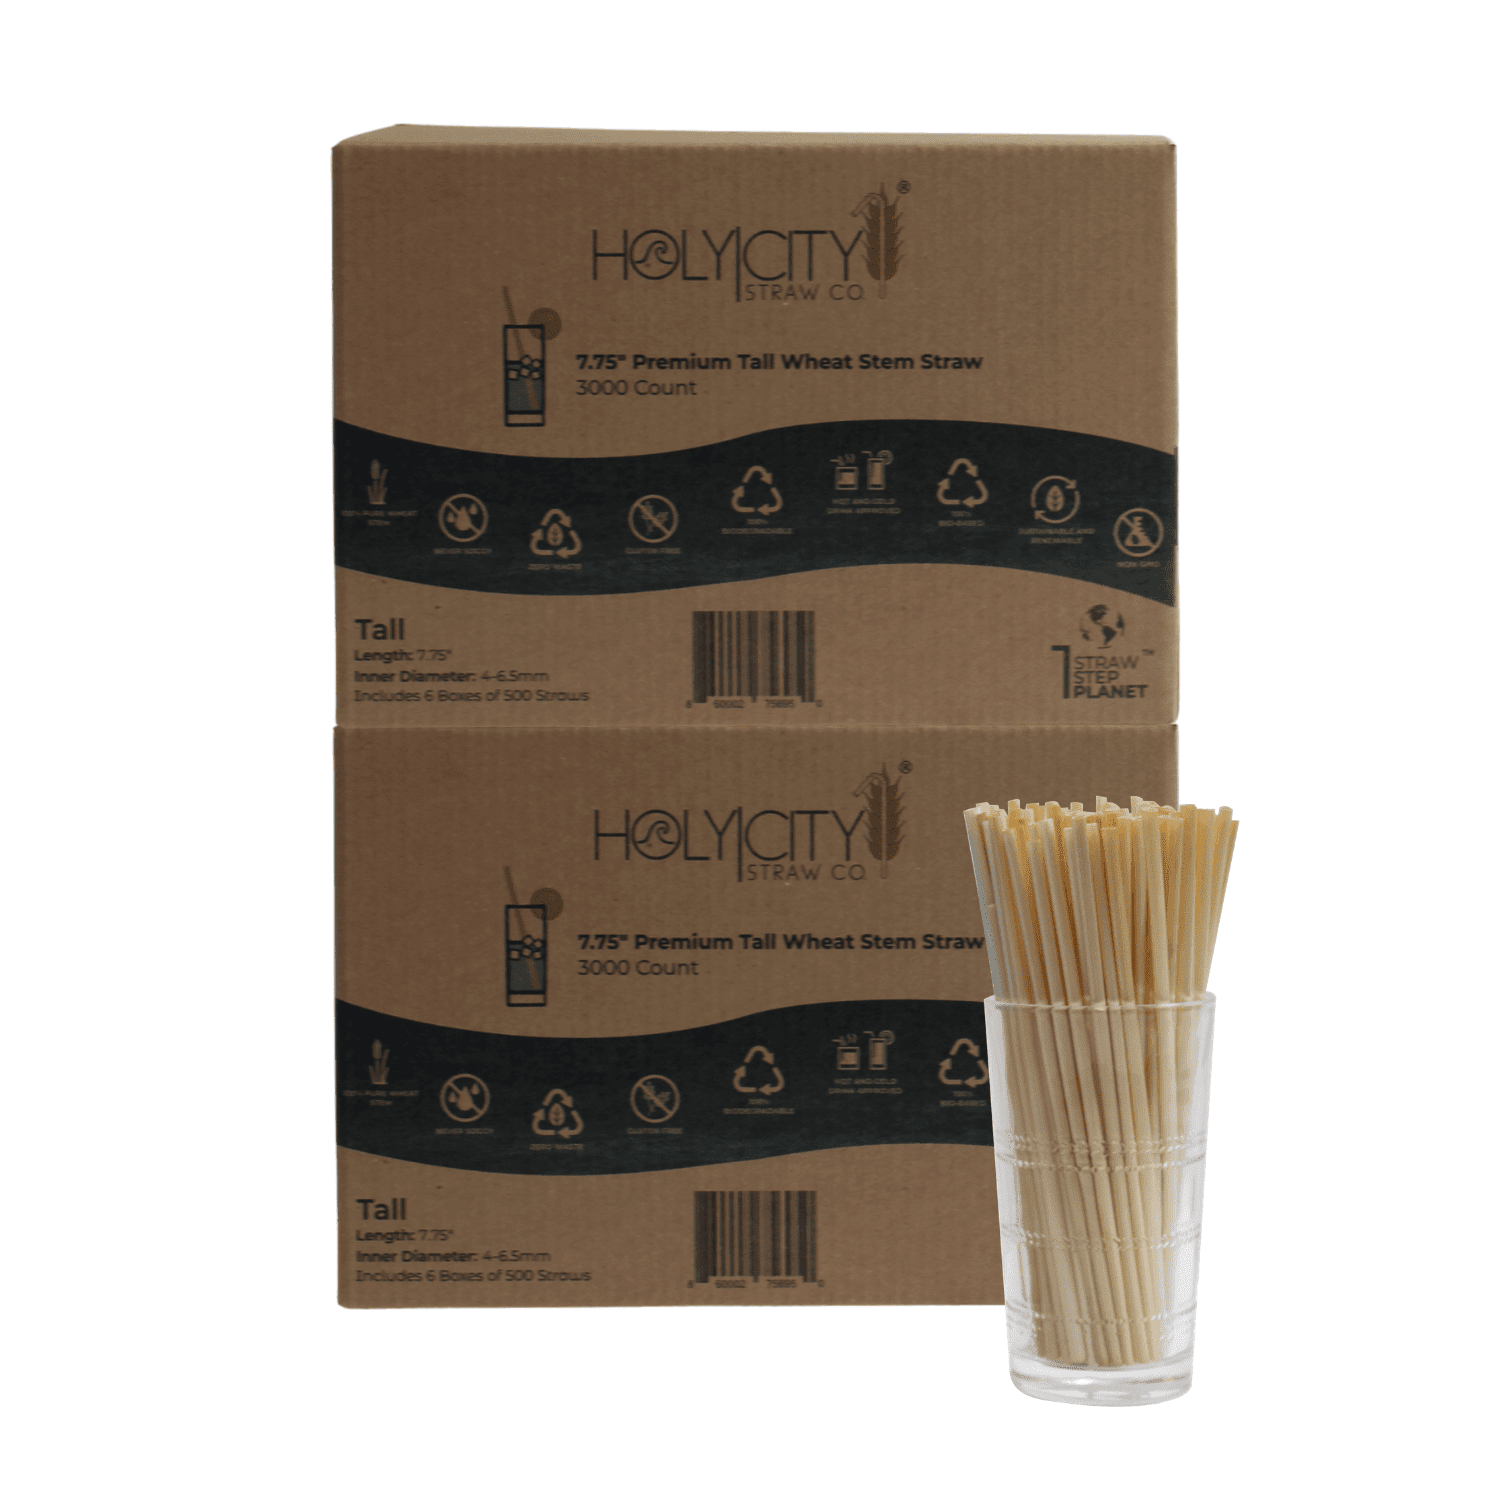 6000 count double case containing 12 boxes of 500 count boxes of Holy City Tall Wheat Straws